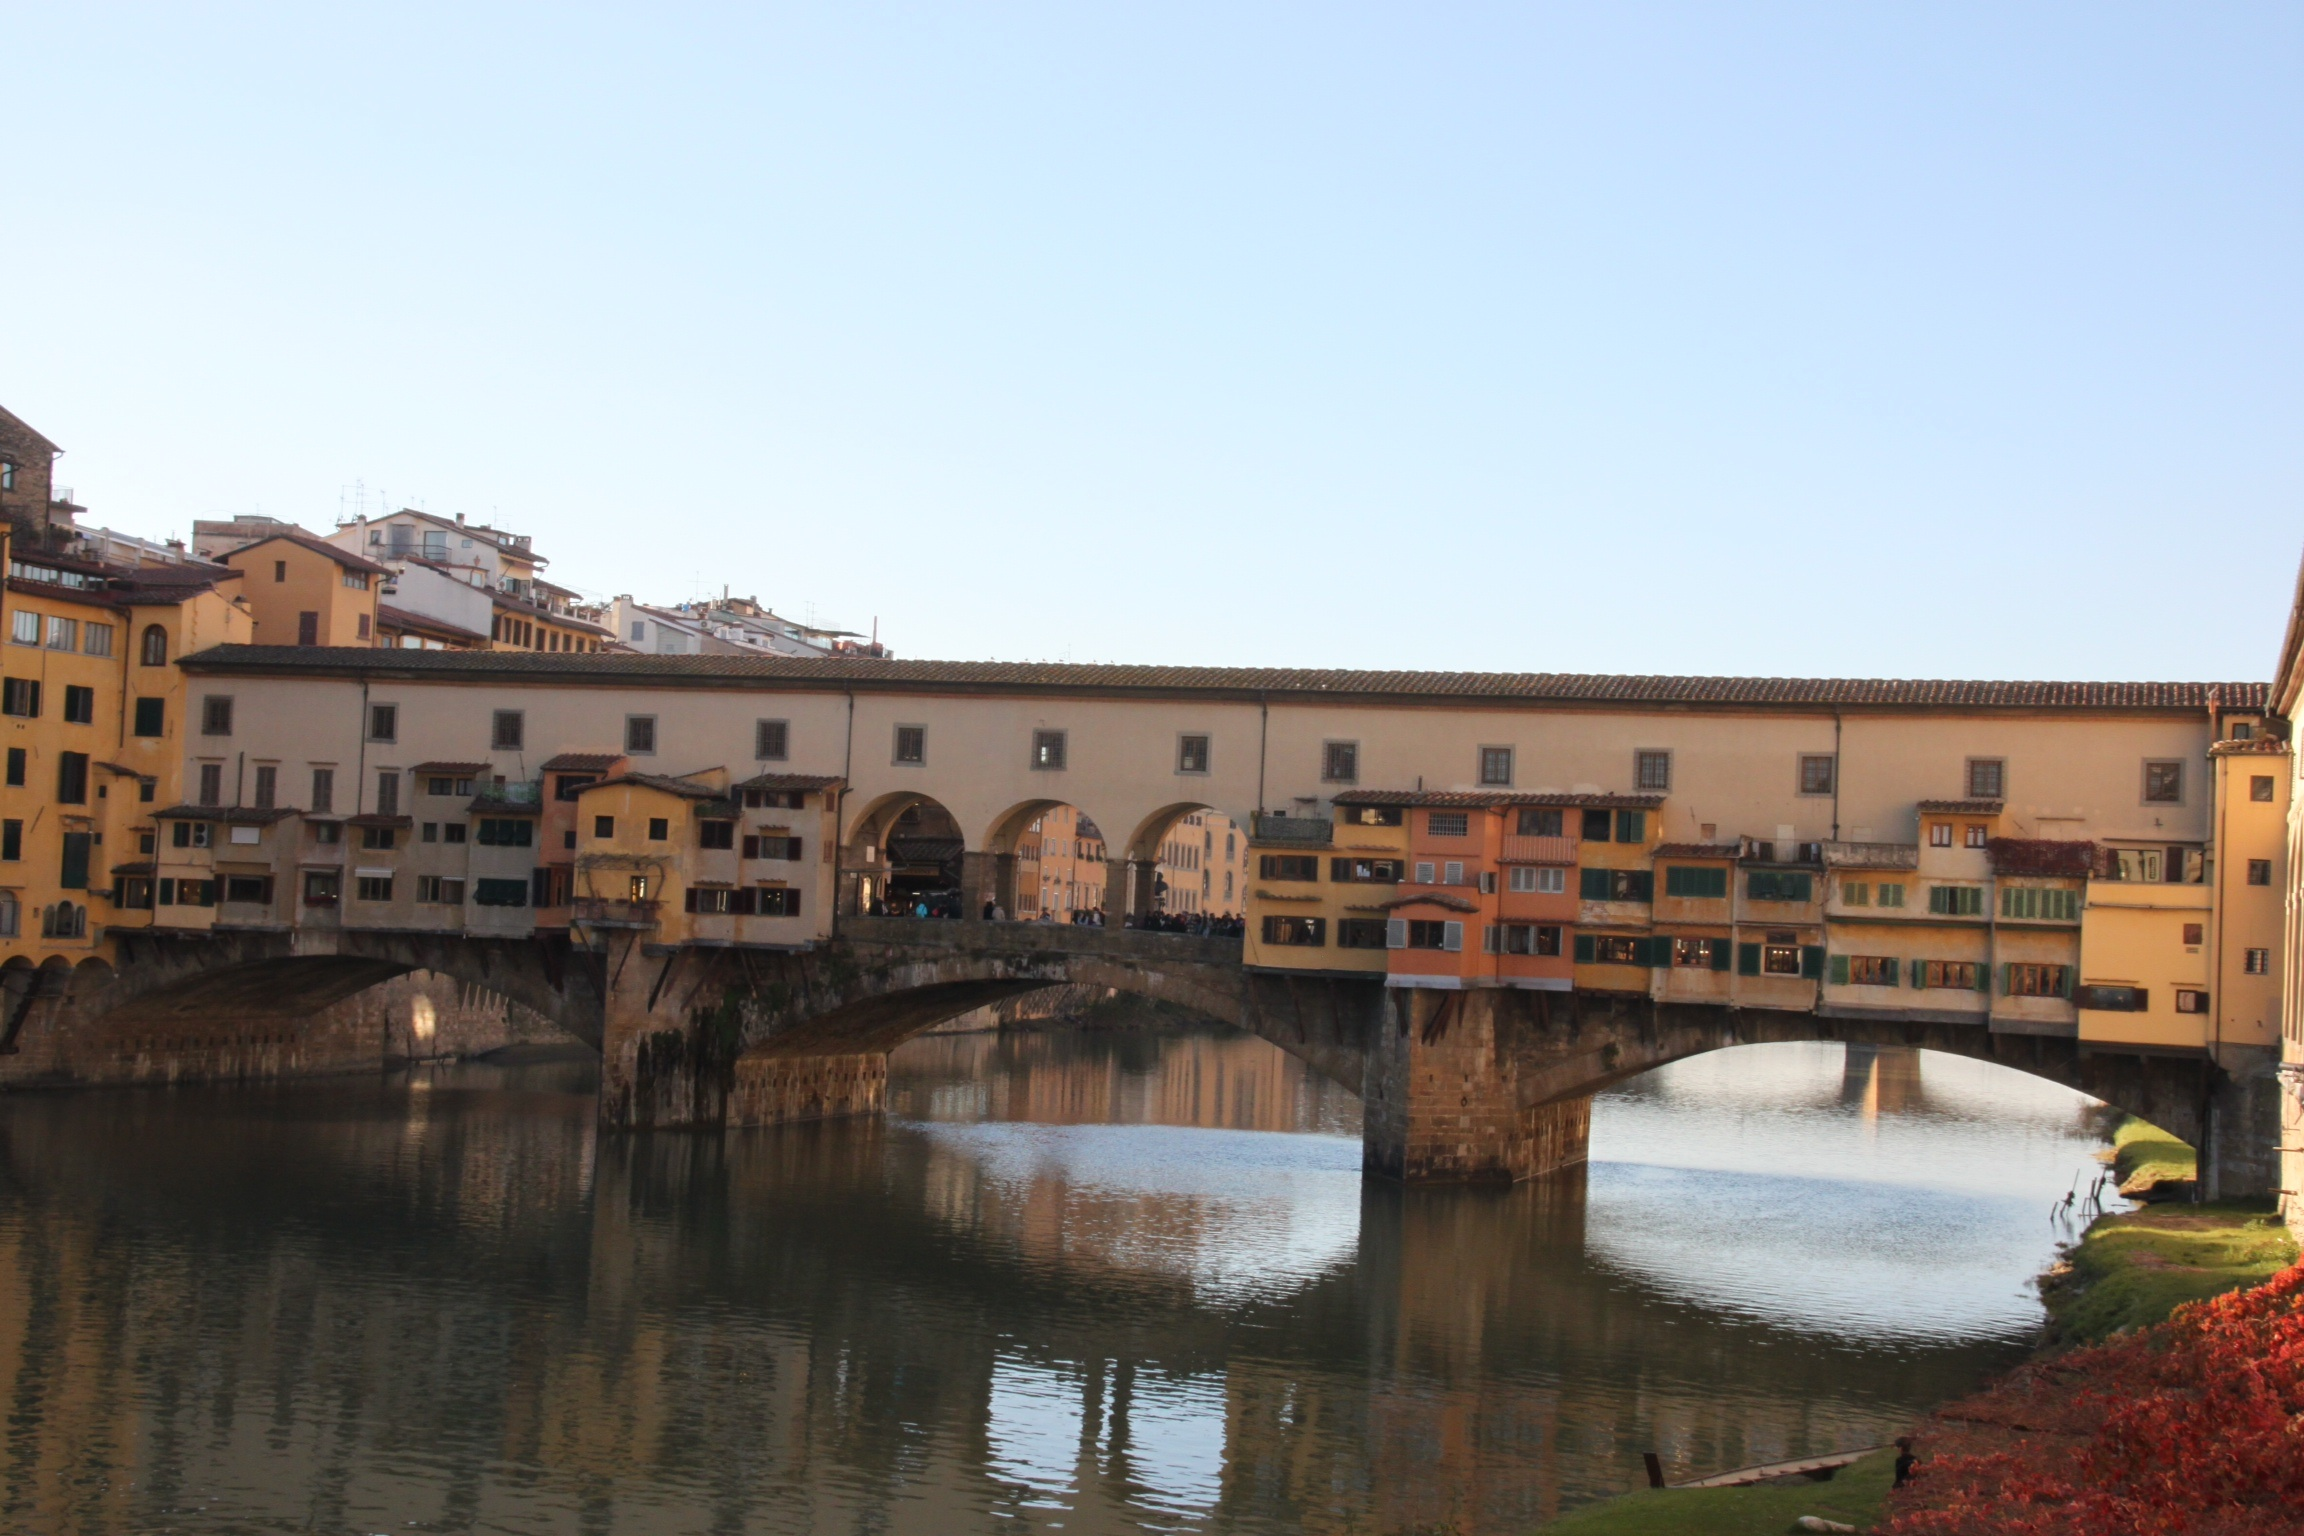 Florence's famous Ponte Vecchio bridge with shops across it